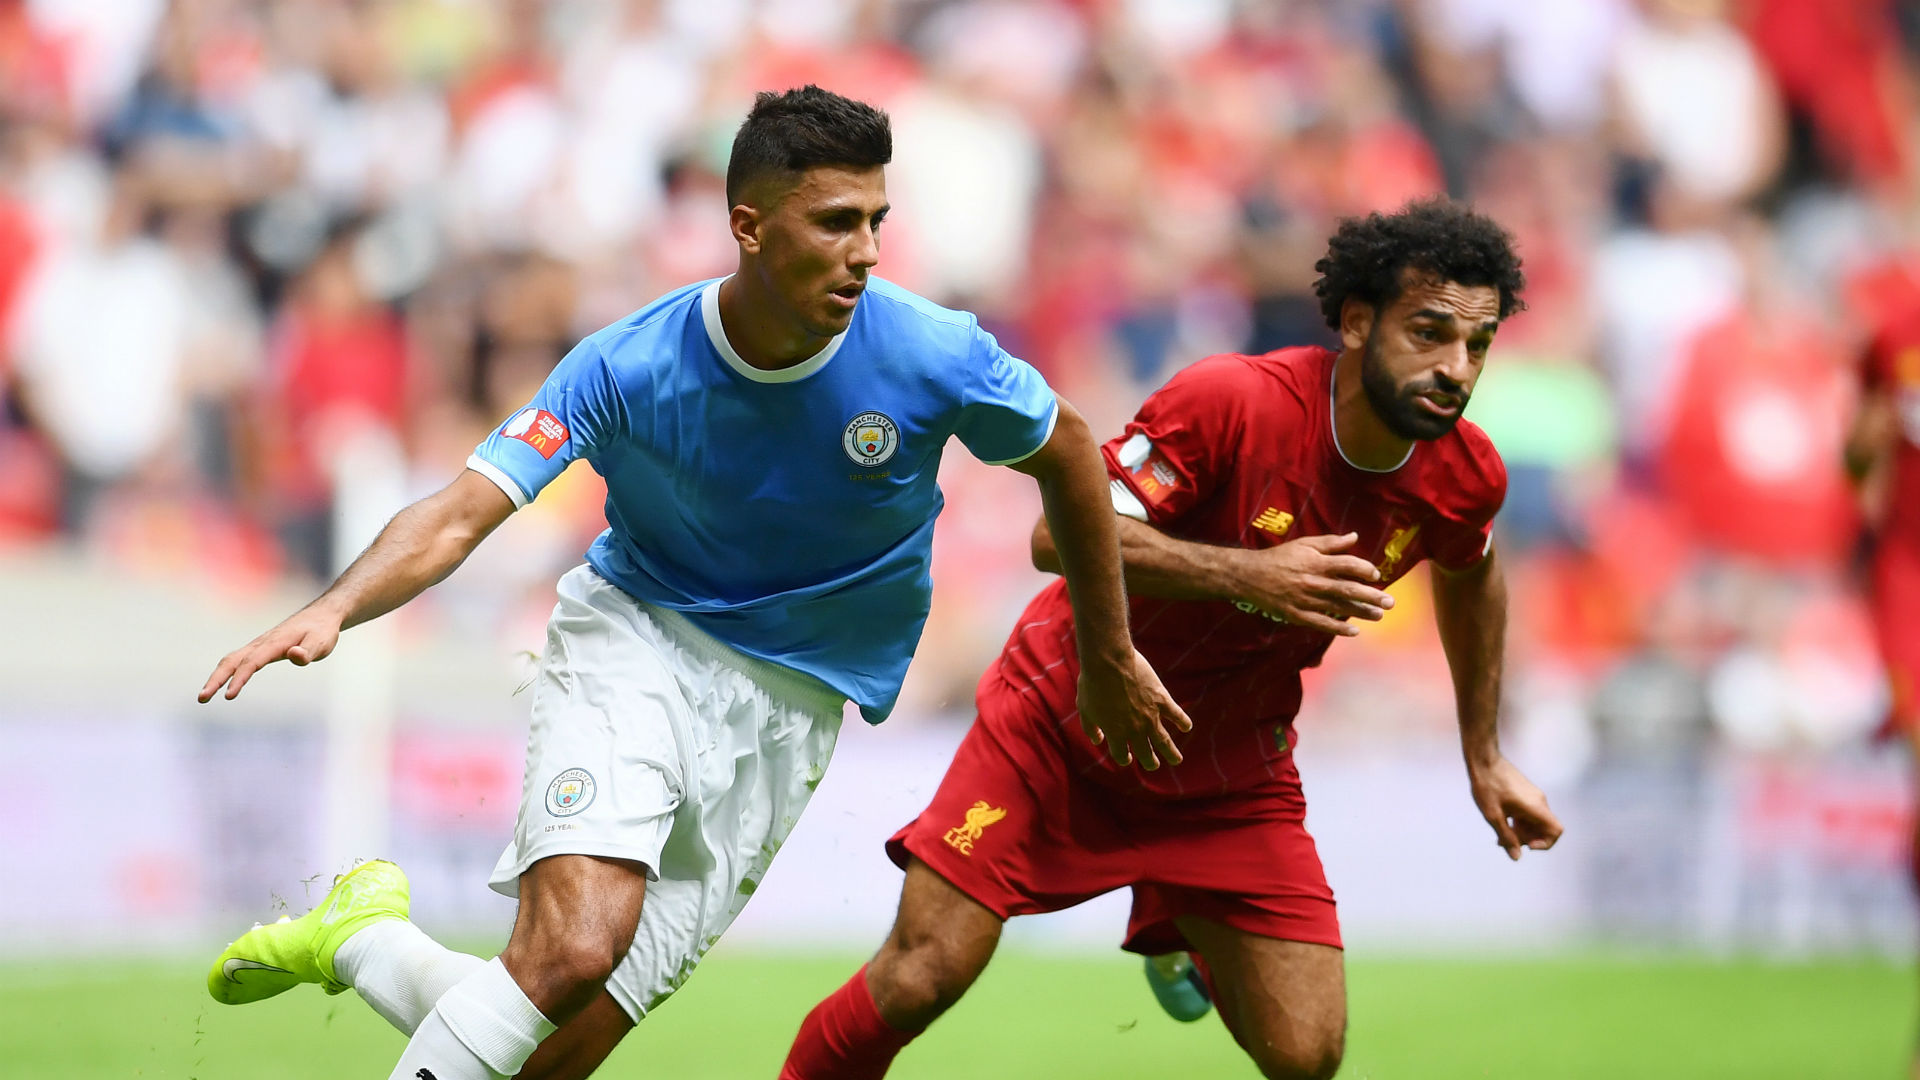 Rodri has enjoyed an impressive start to his Manchester City career, despite admitting he has plenty to learn from Pep Guardiola.